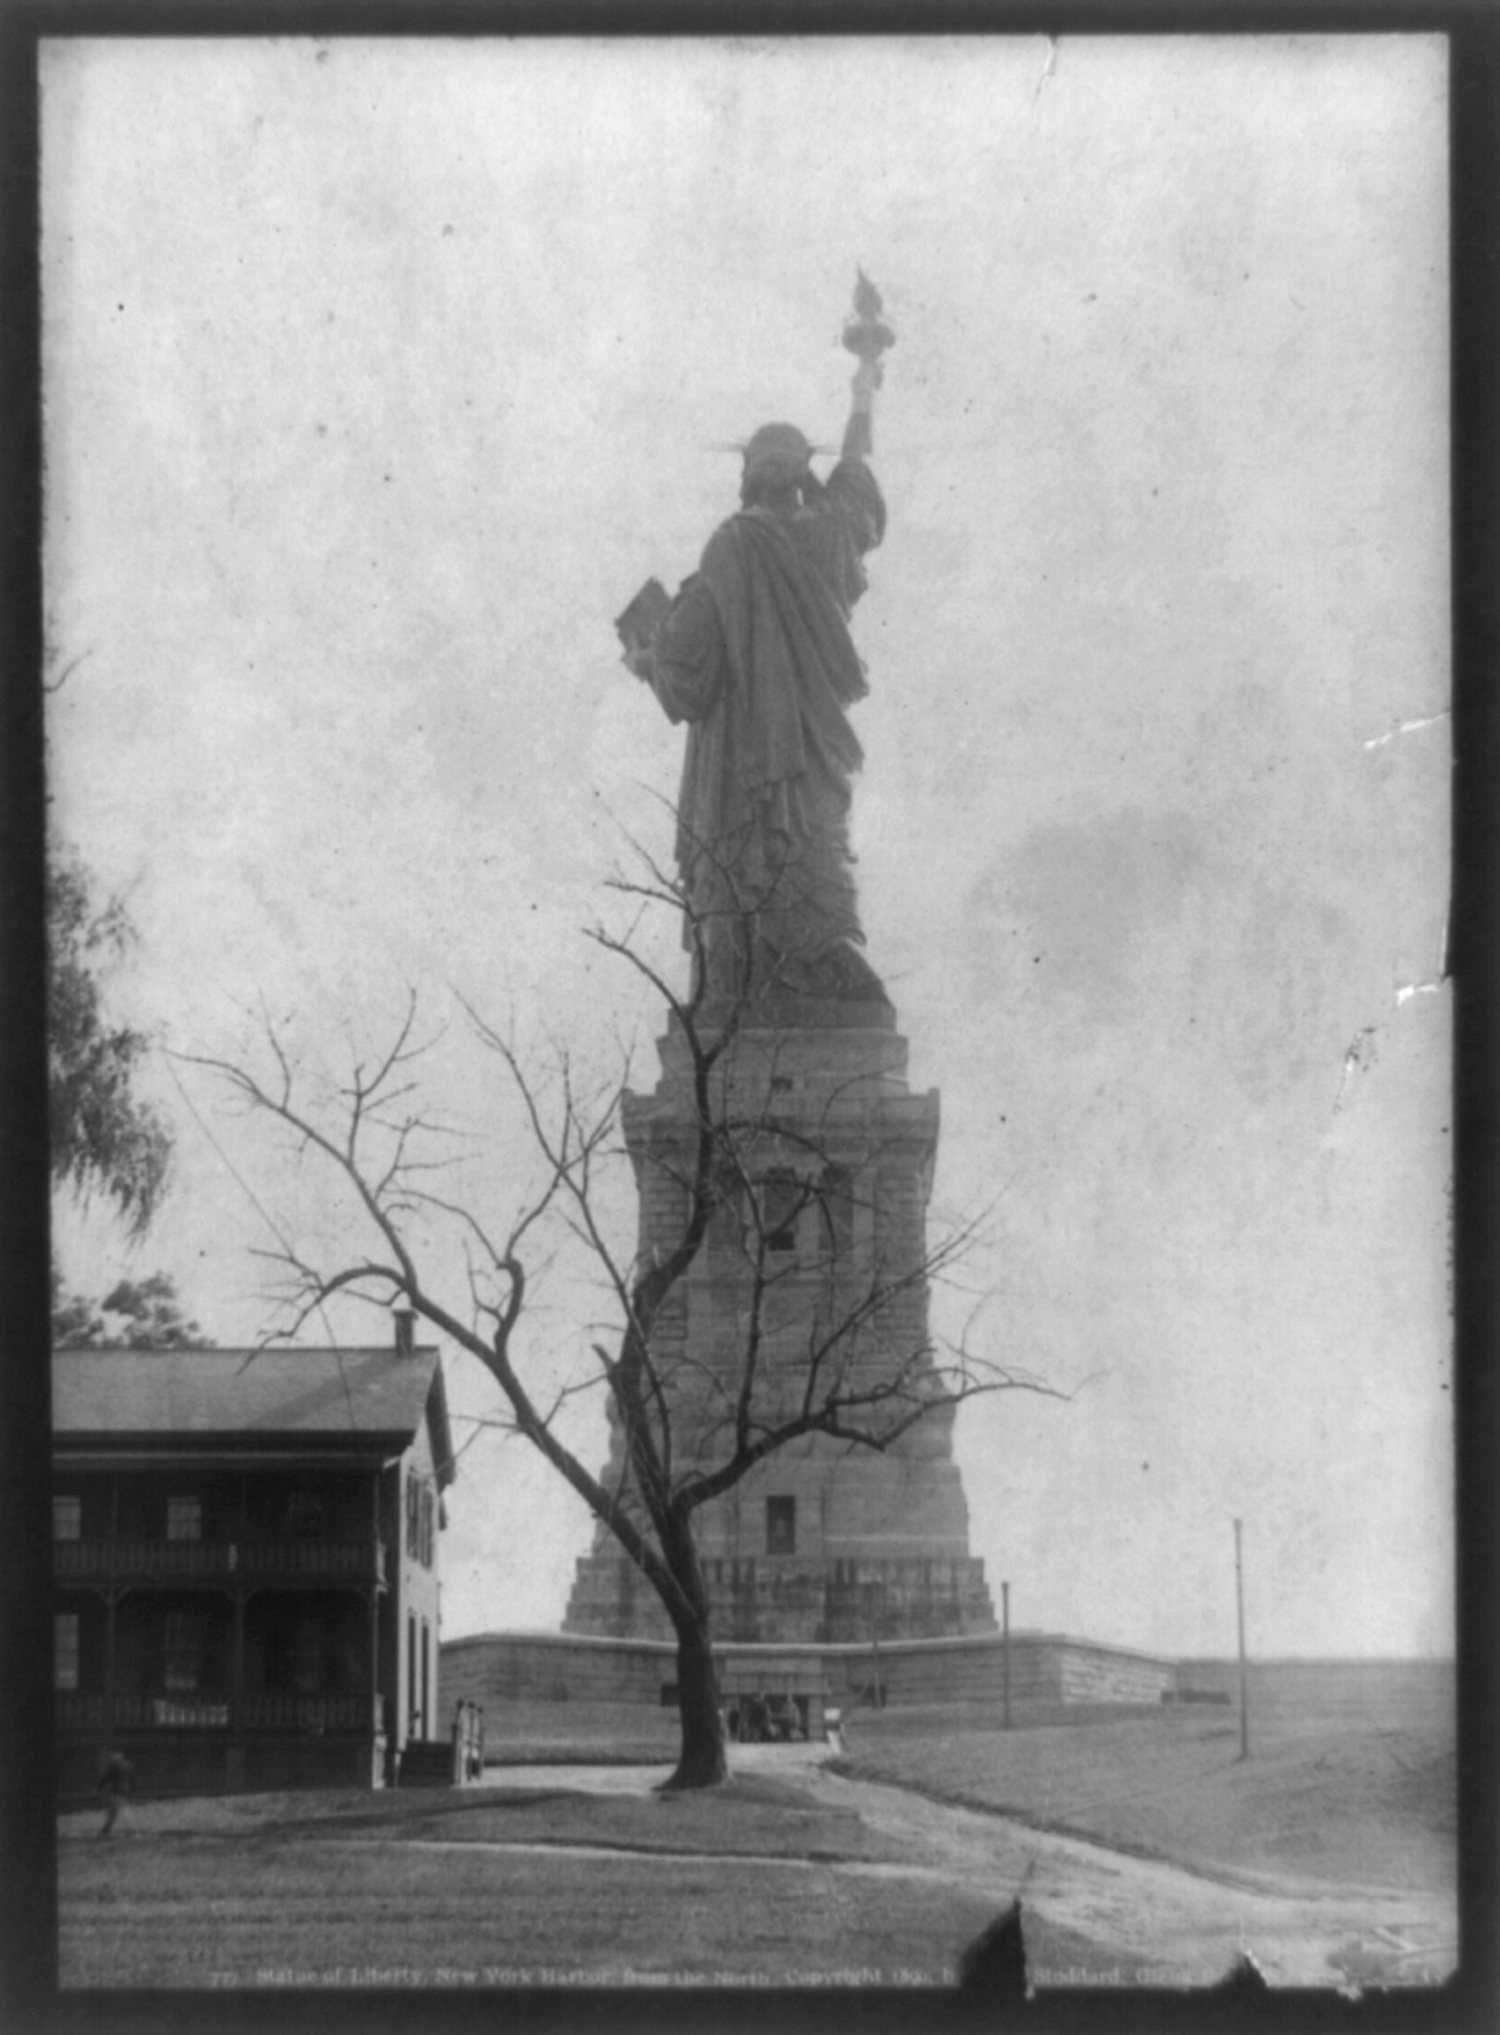 Statue of Liberty, New York Harbor, from the North, ca. 1891.